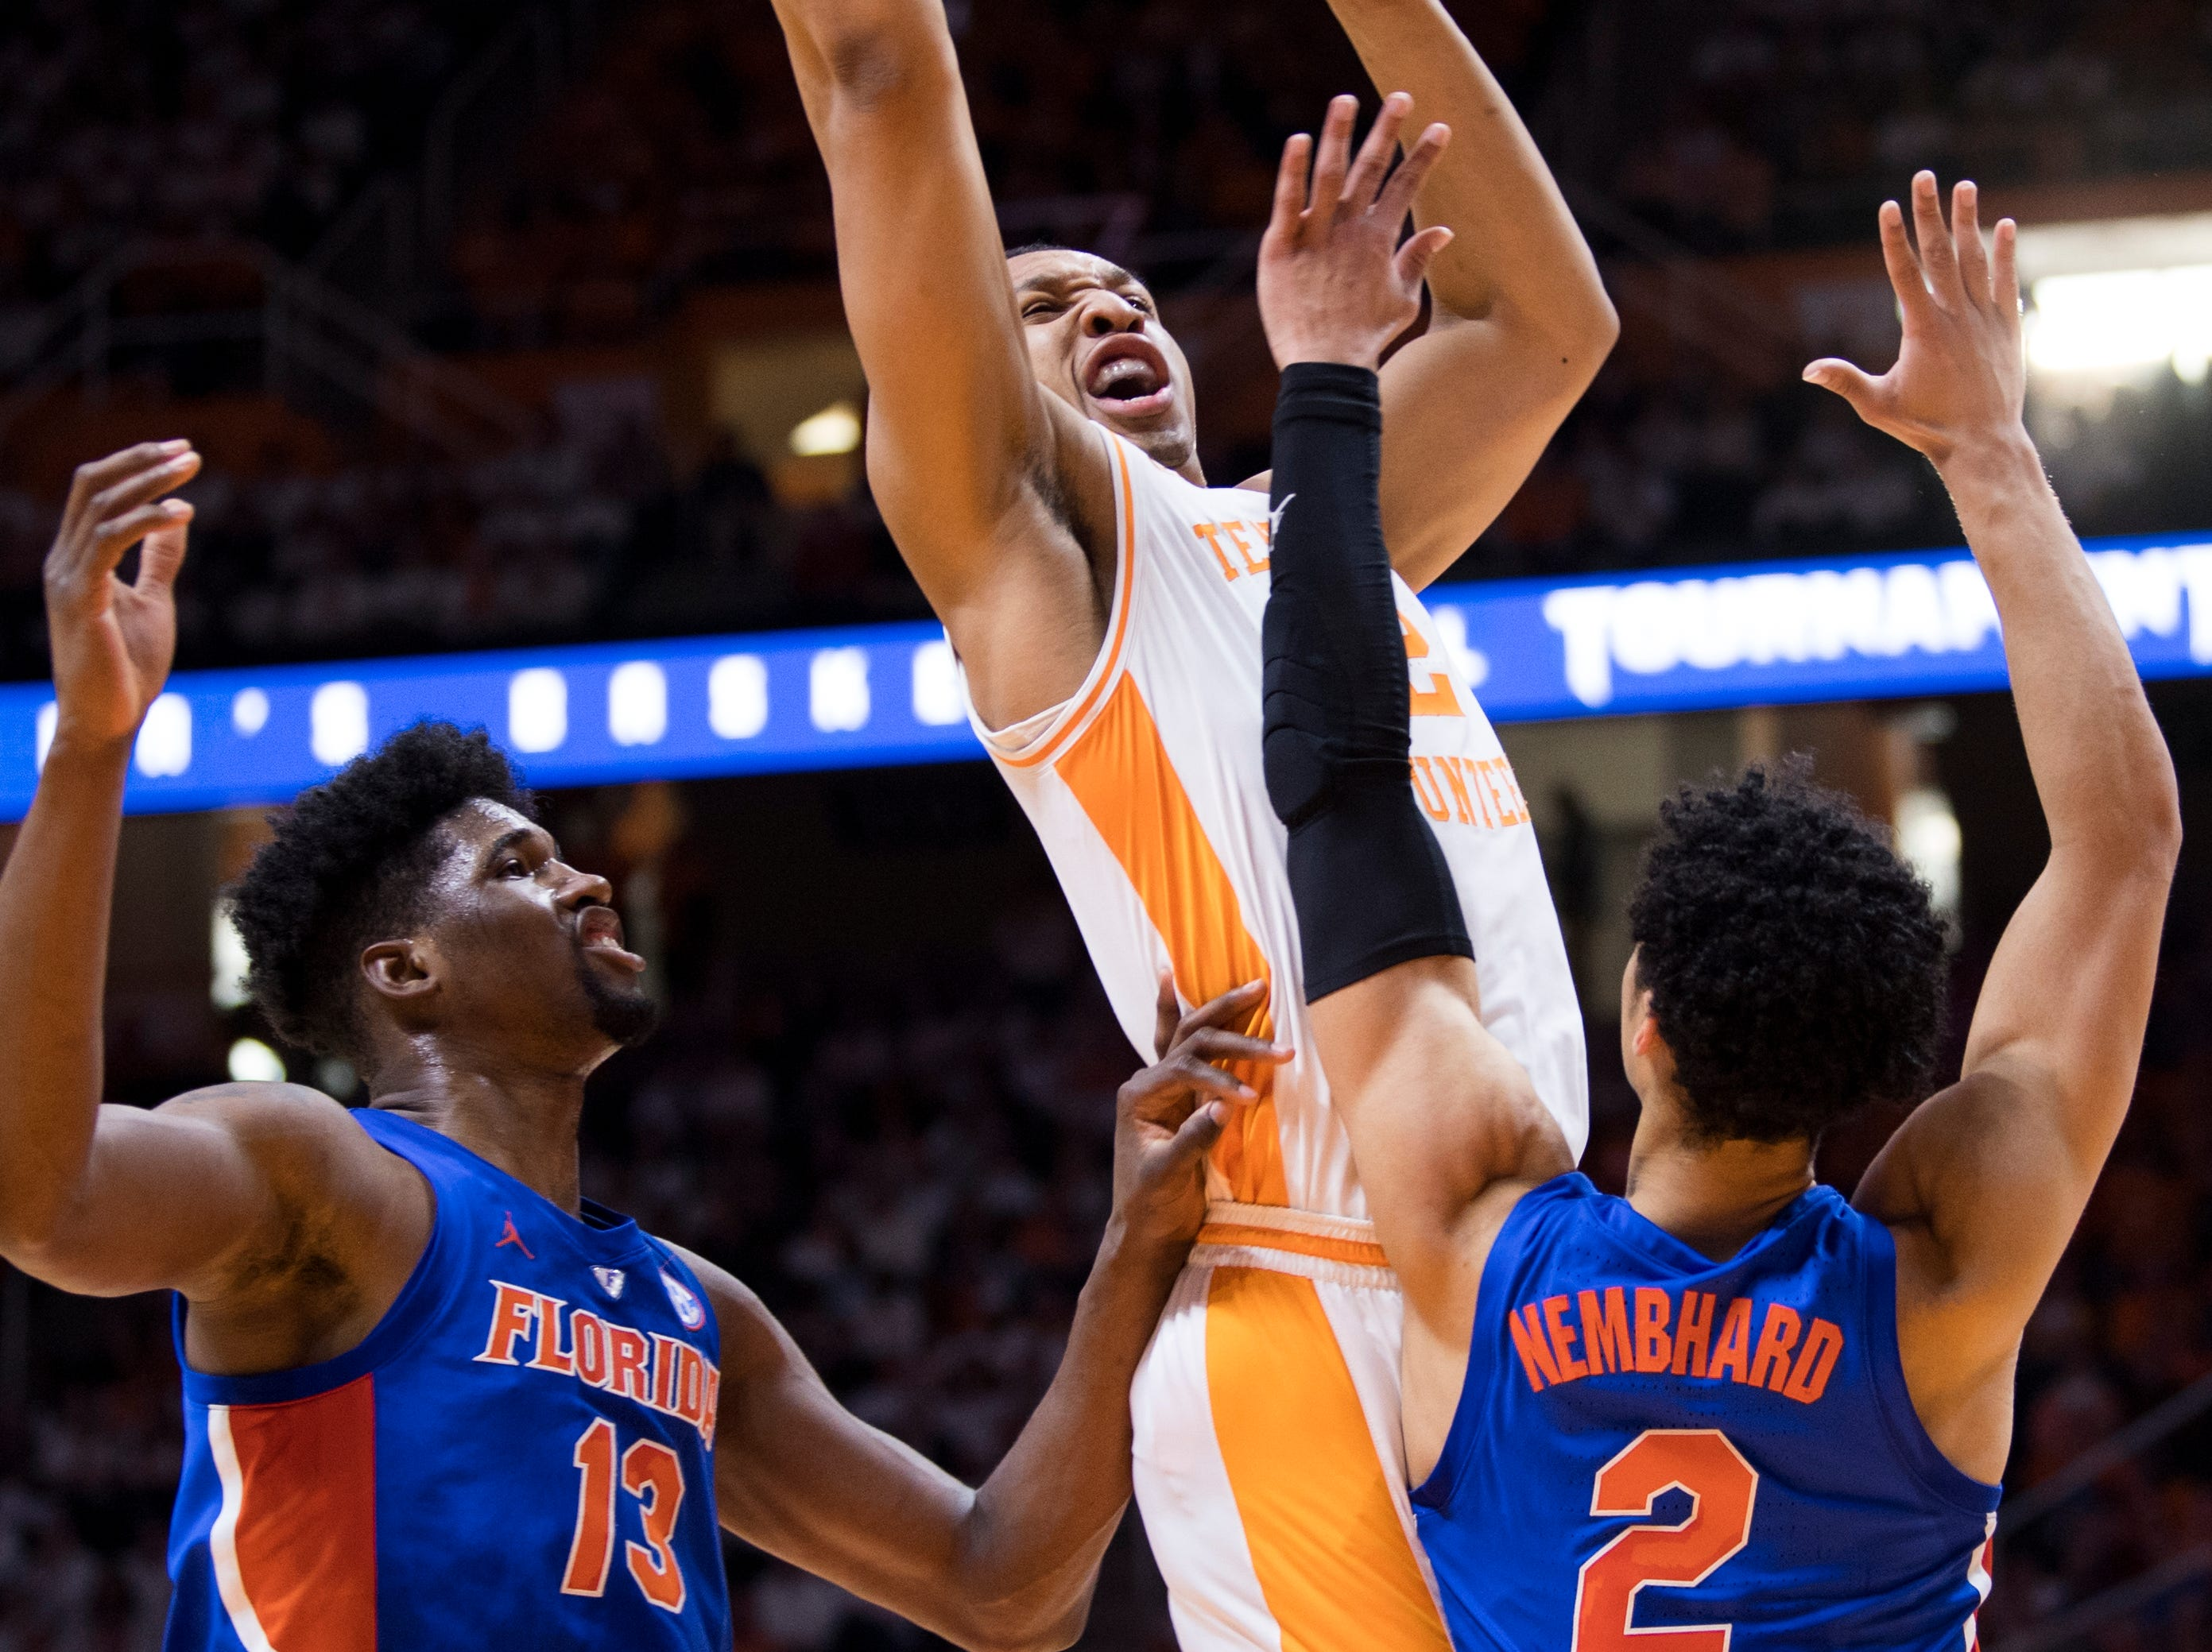 Tennessee forward Grant Williams (2) attempts a shot during Tennessee's home SEC conference game against Florida at Thompson-Boling Arena in Knoxville on Saturday, February 9, 2019.